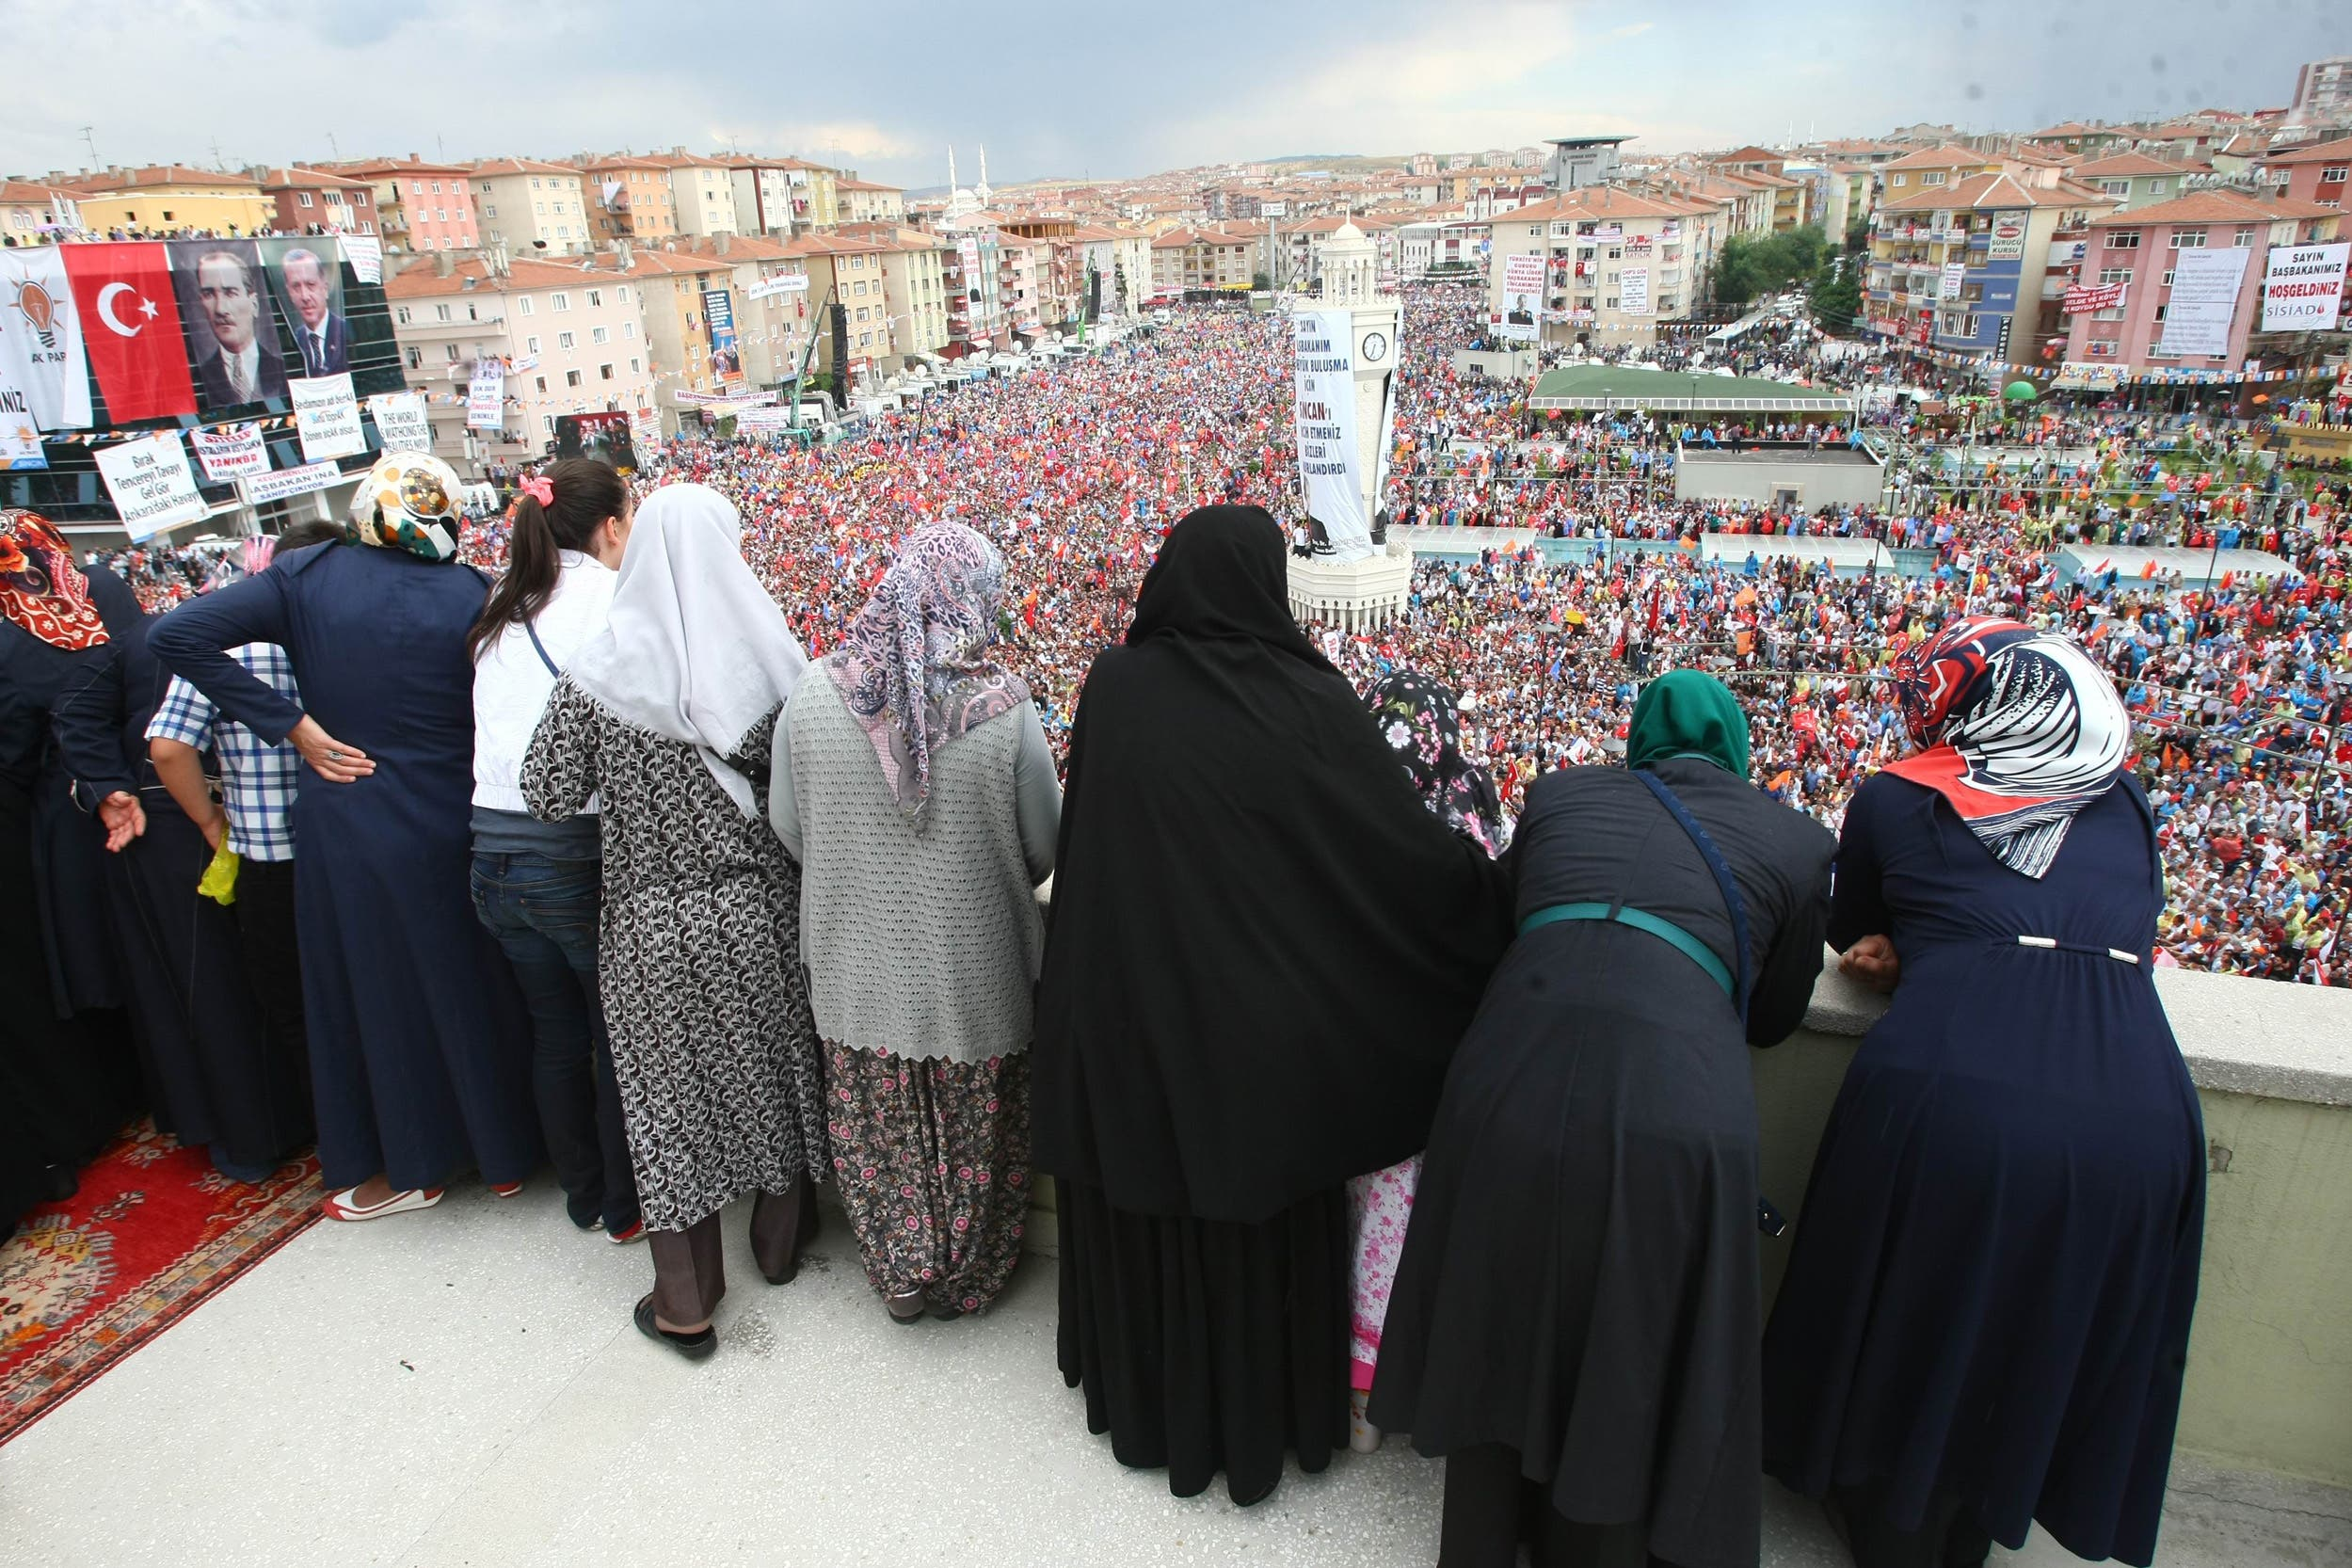 Supporters listen to a speech by Turkish prime minister during a rally in Sincan on June 15, 2013. (AFP)